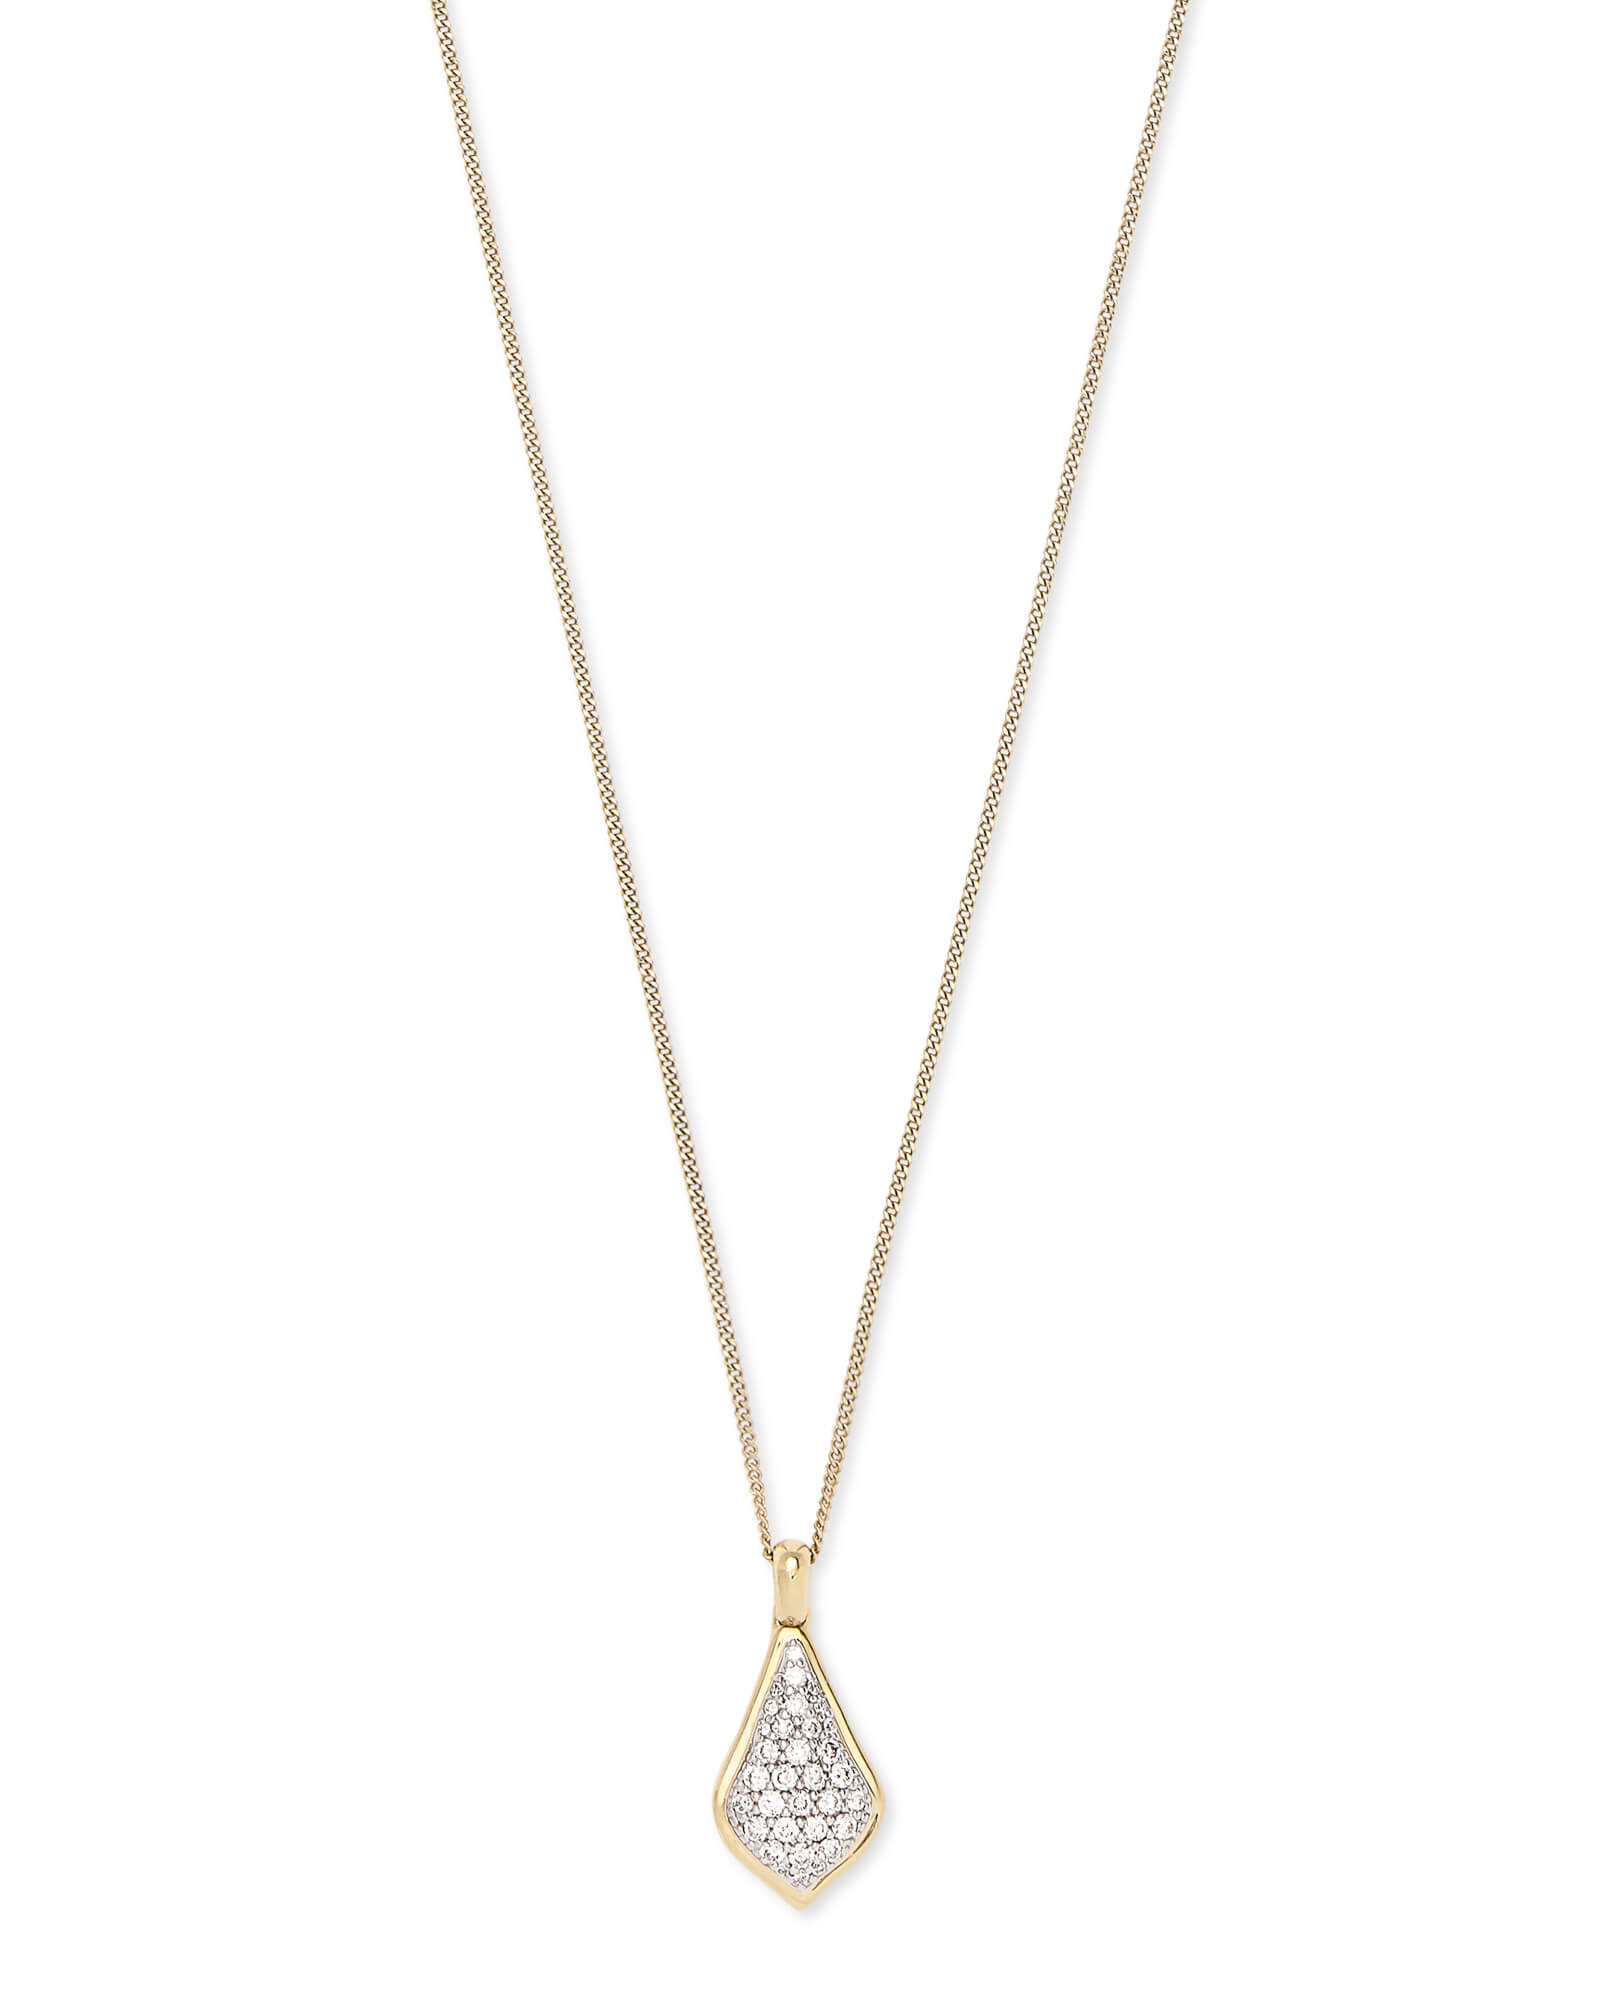 Lela Pendant Necklace in Pave Diamond and 14k Yellow Gold